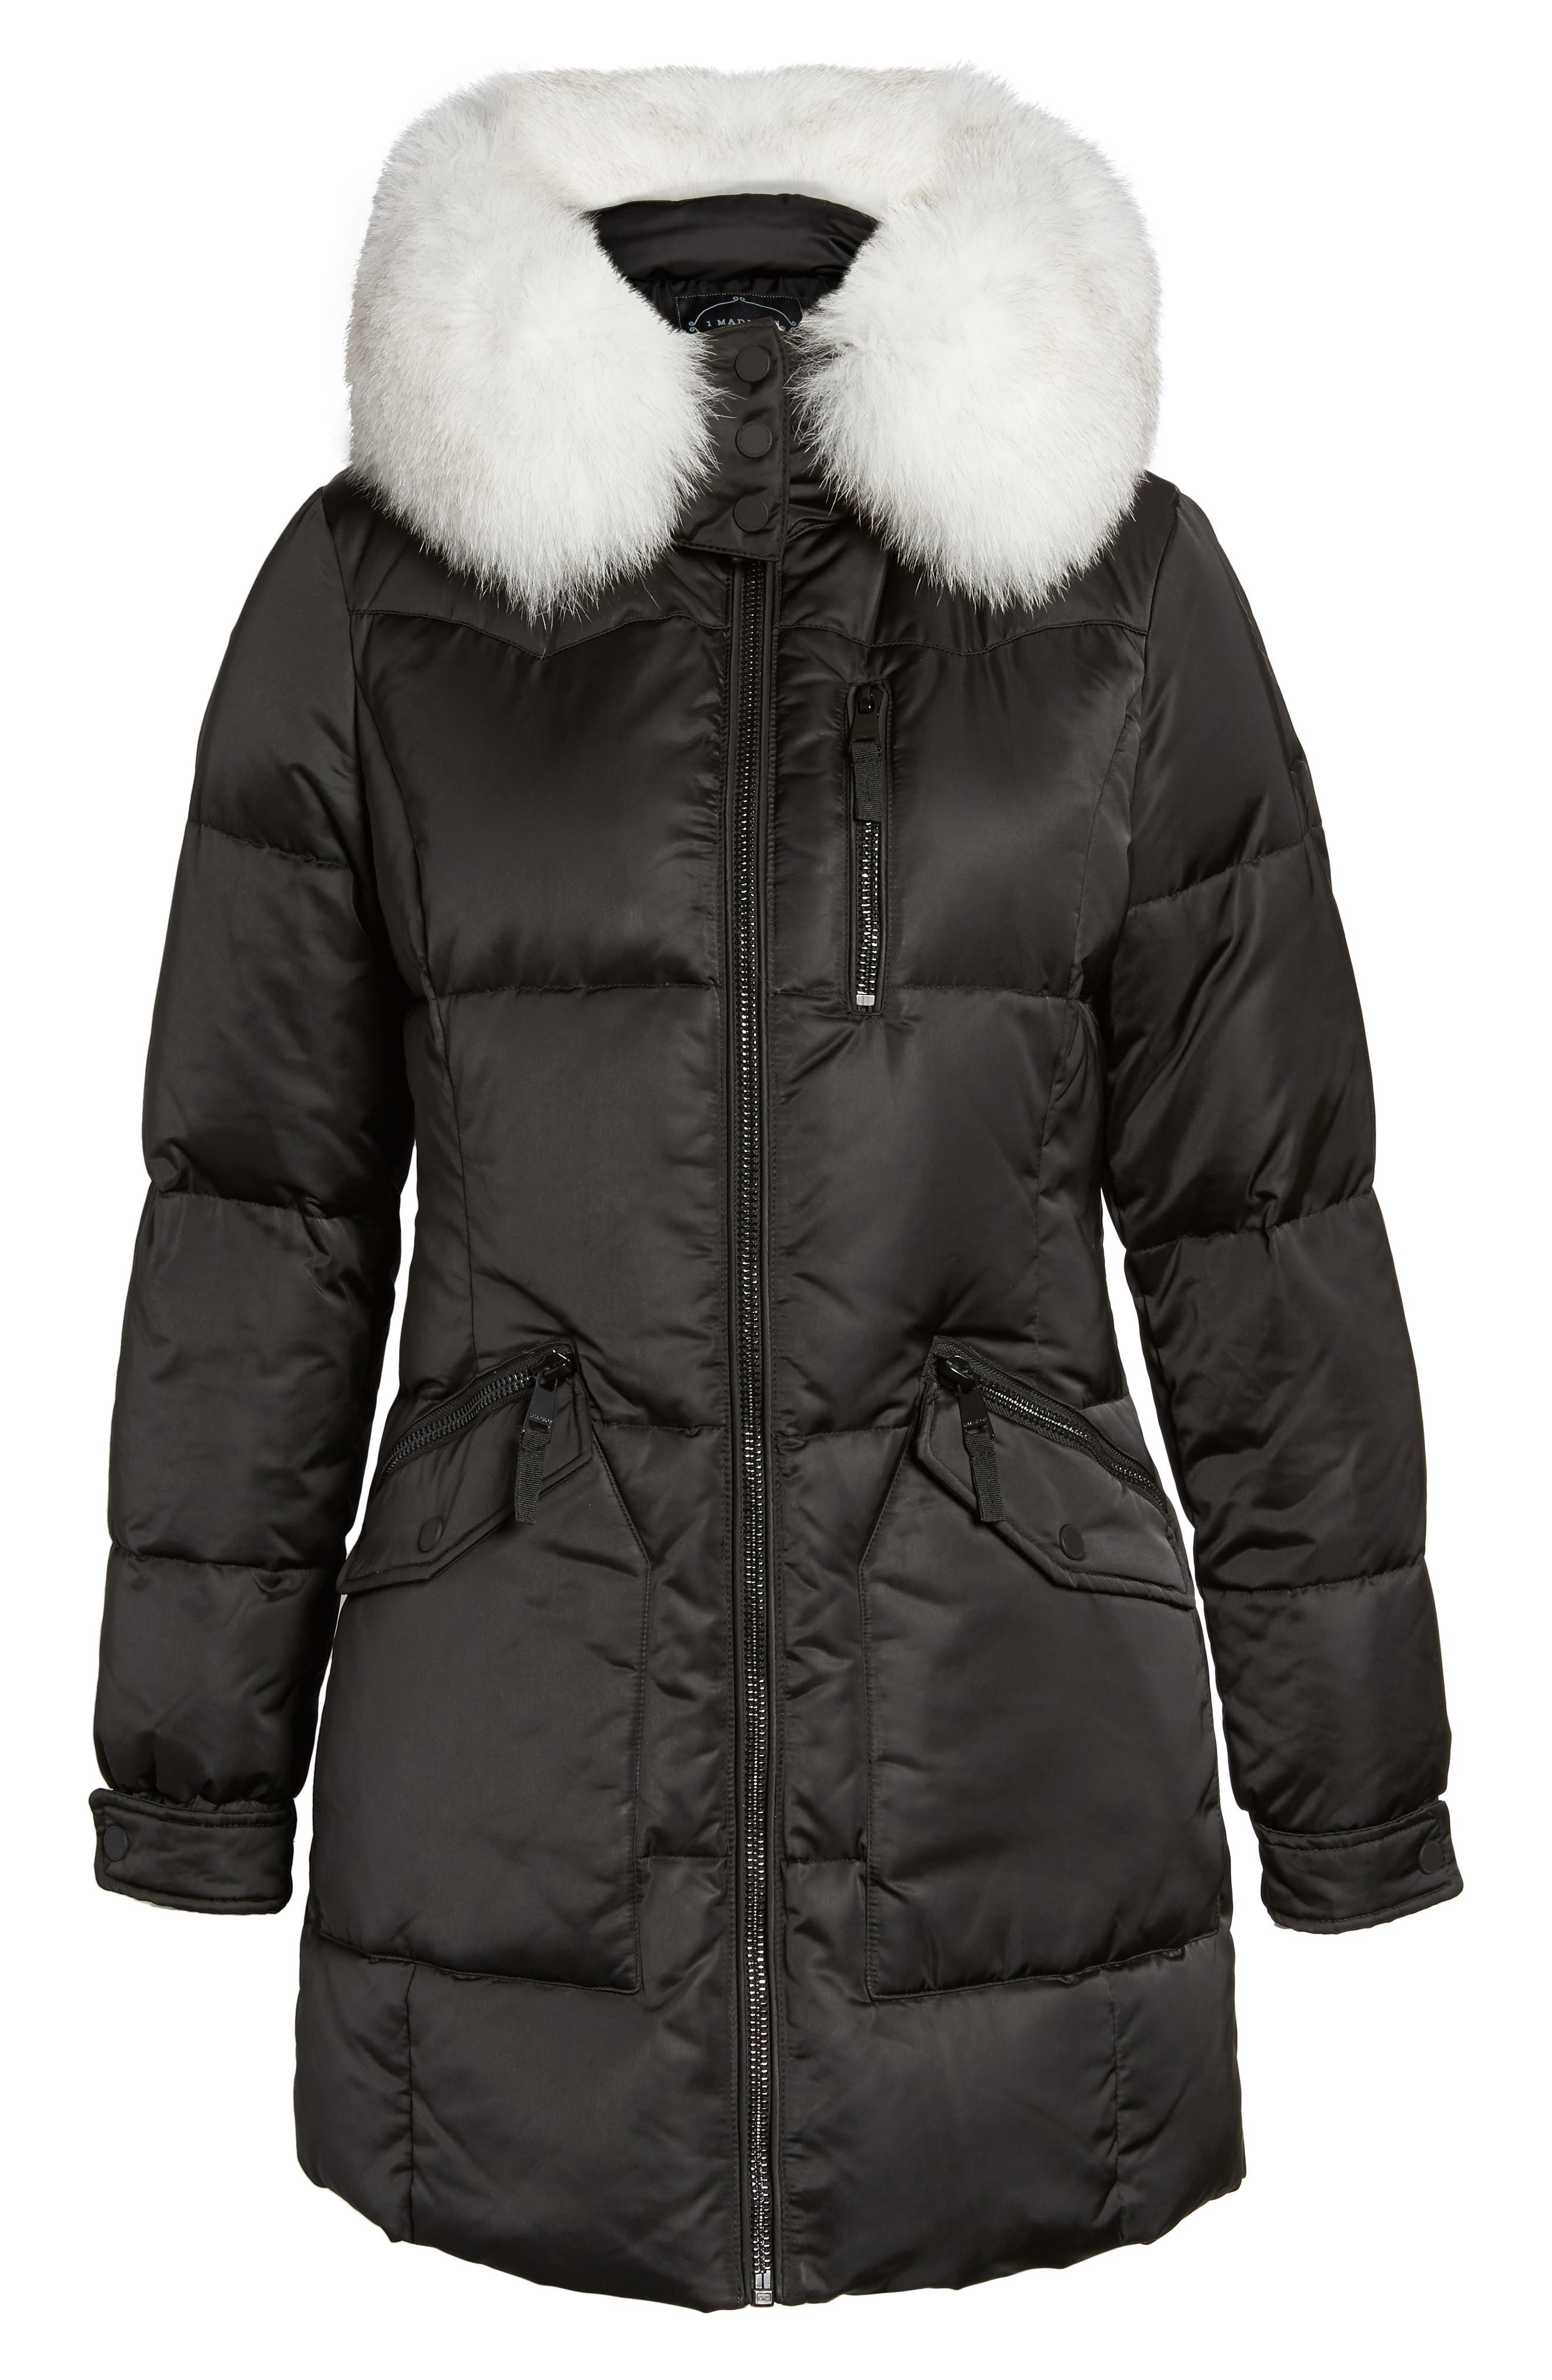 Puffer Jacket with Genuine Fox Fur Trim,                             Alternate thumbnail 6, color,                             Black